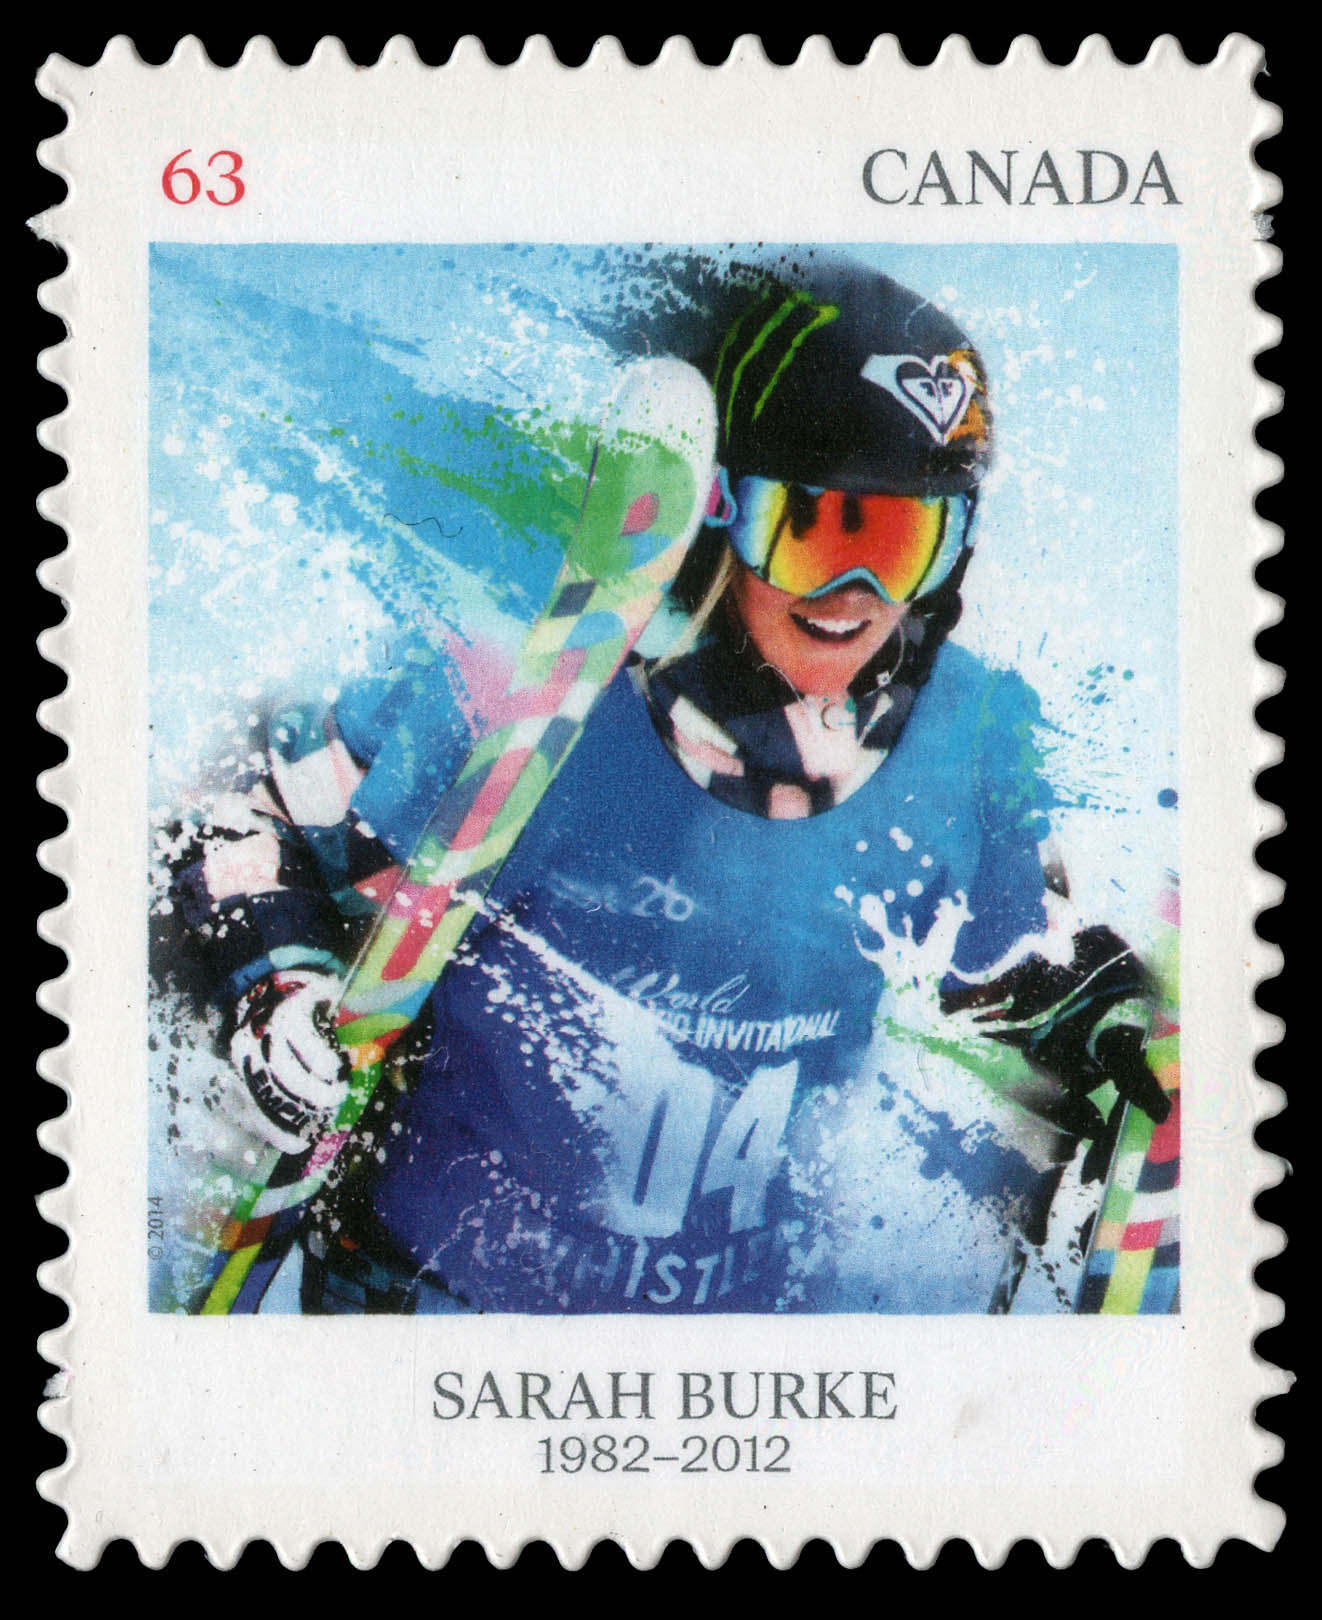 Sarah Burke Canada Postage Stamp | Pioneers of Winter Sports